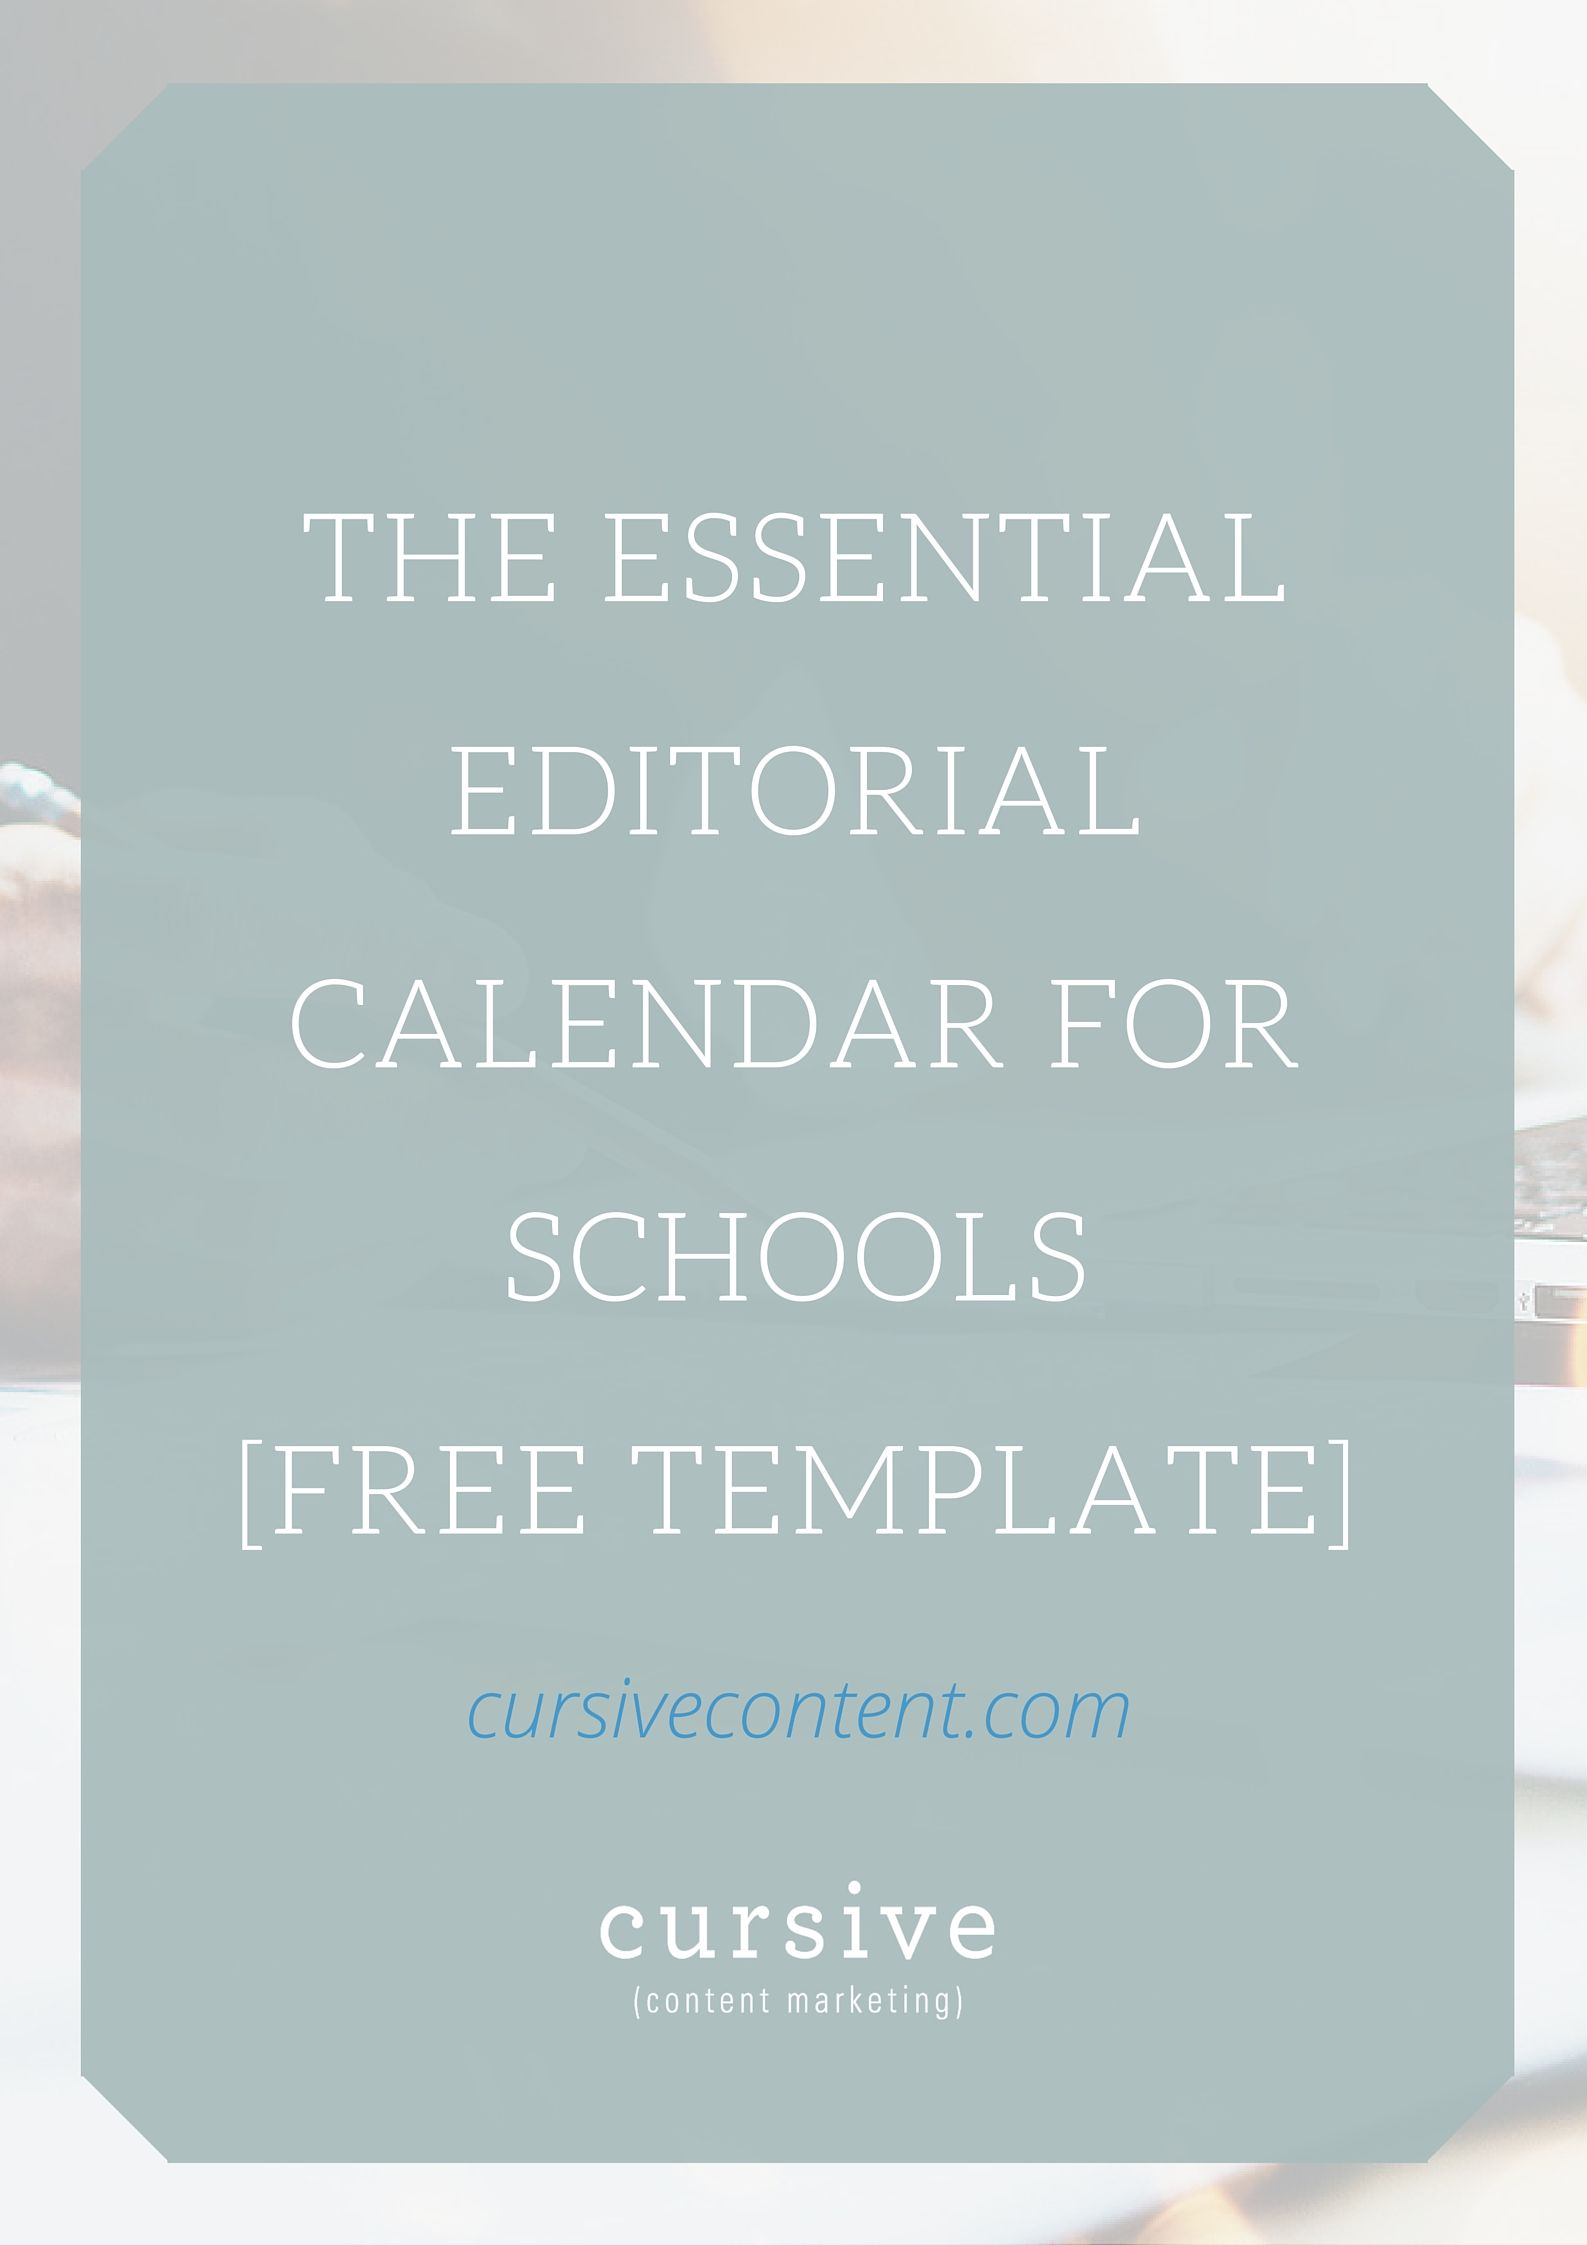 The Essential Editorial Calendar For Schools Free Template